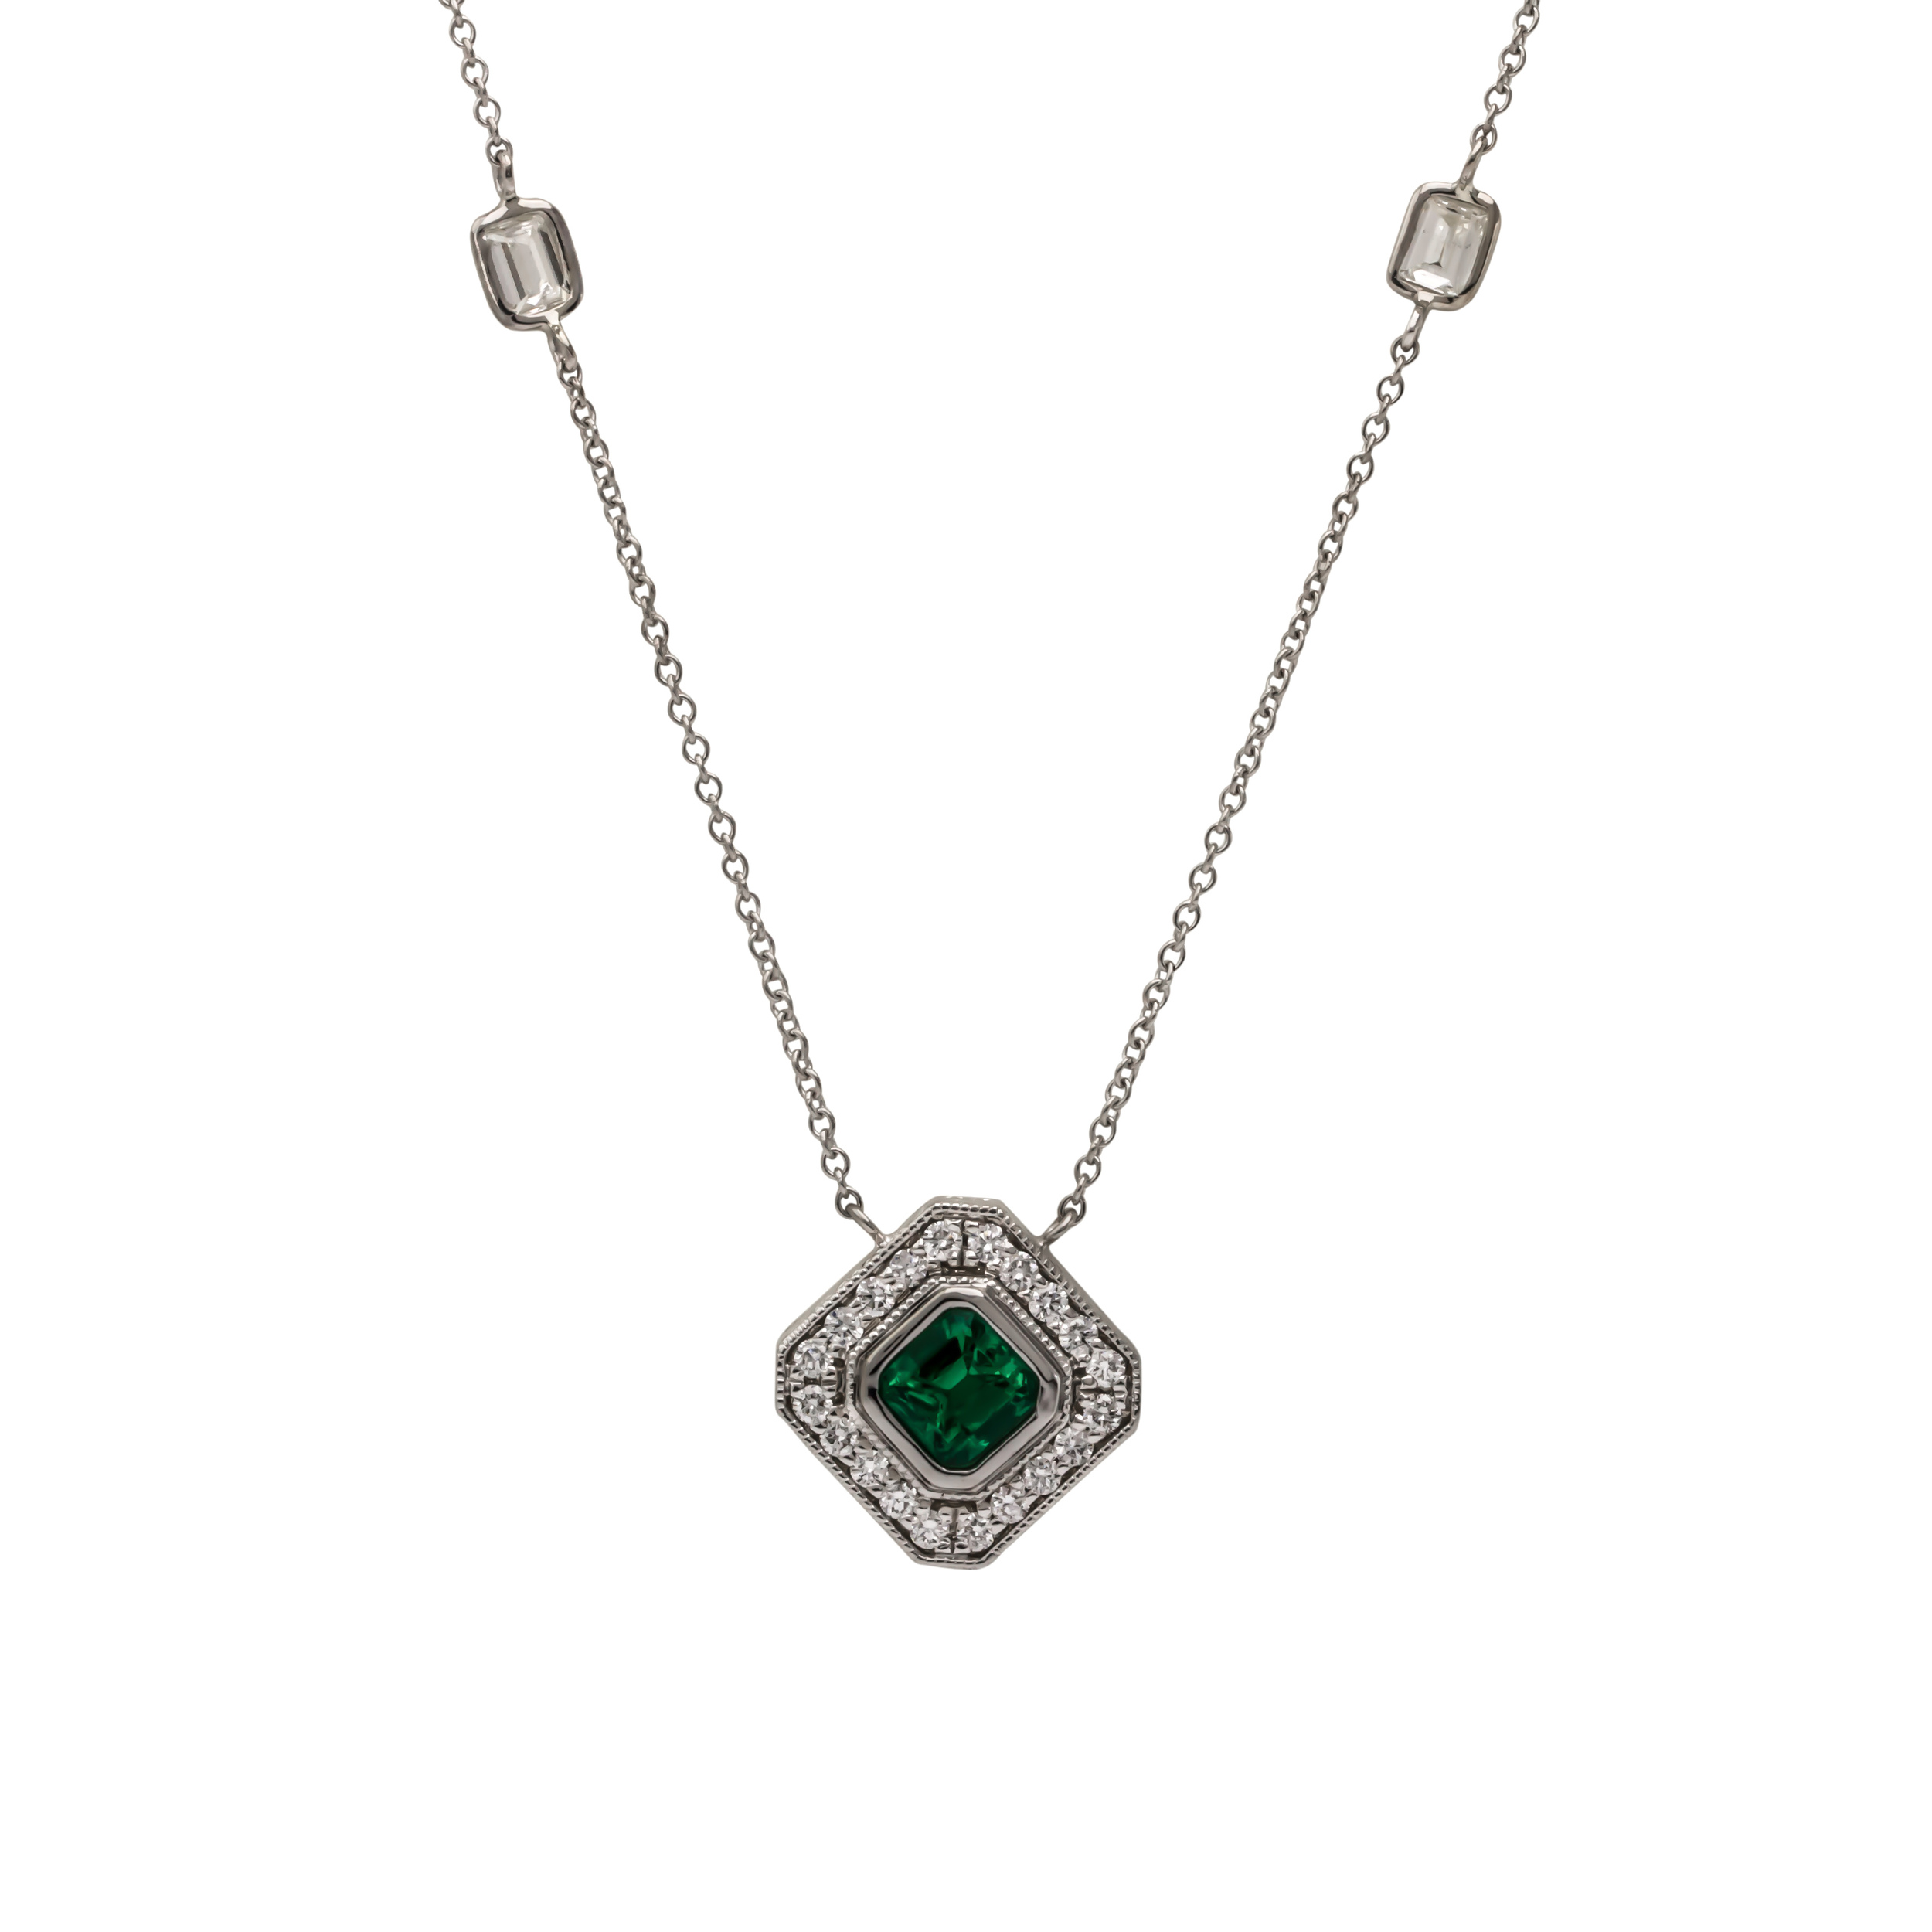 CUSTOM EMERALD AND DIAMOND PENDANT designed using the stones from our client's ring.